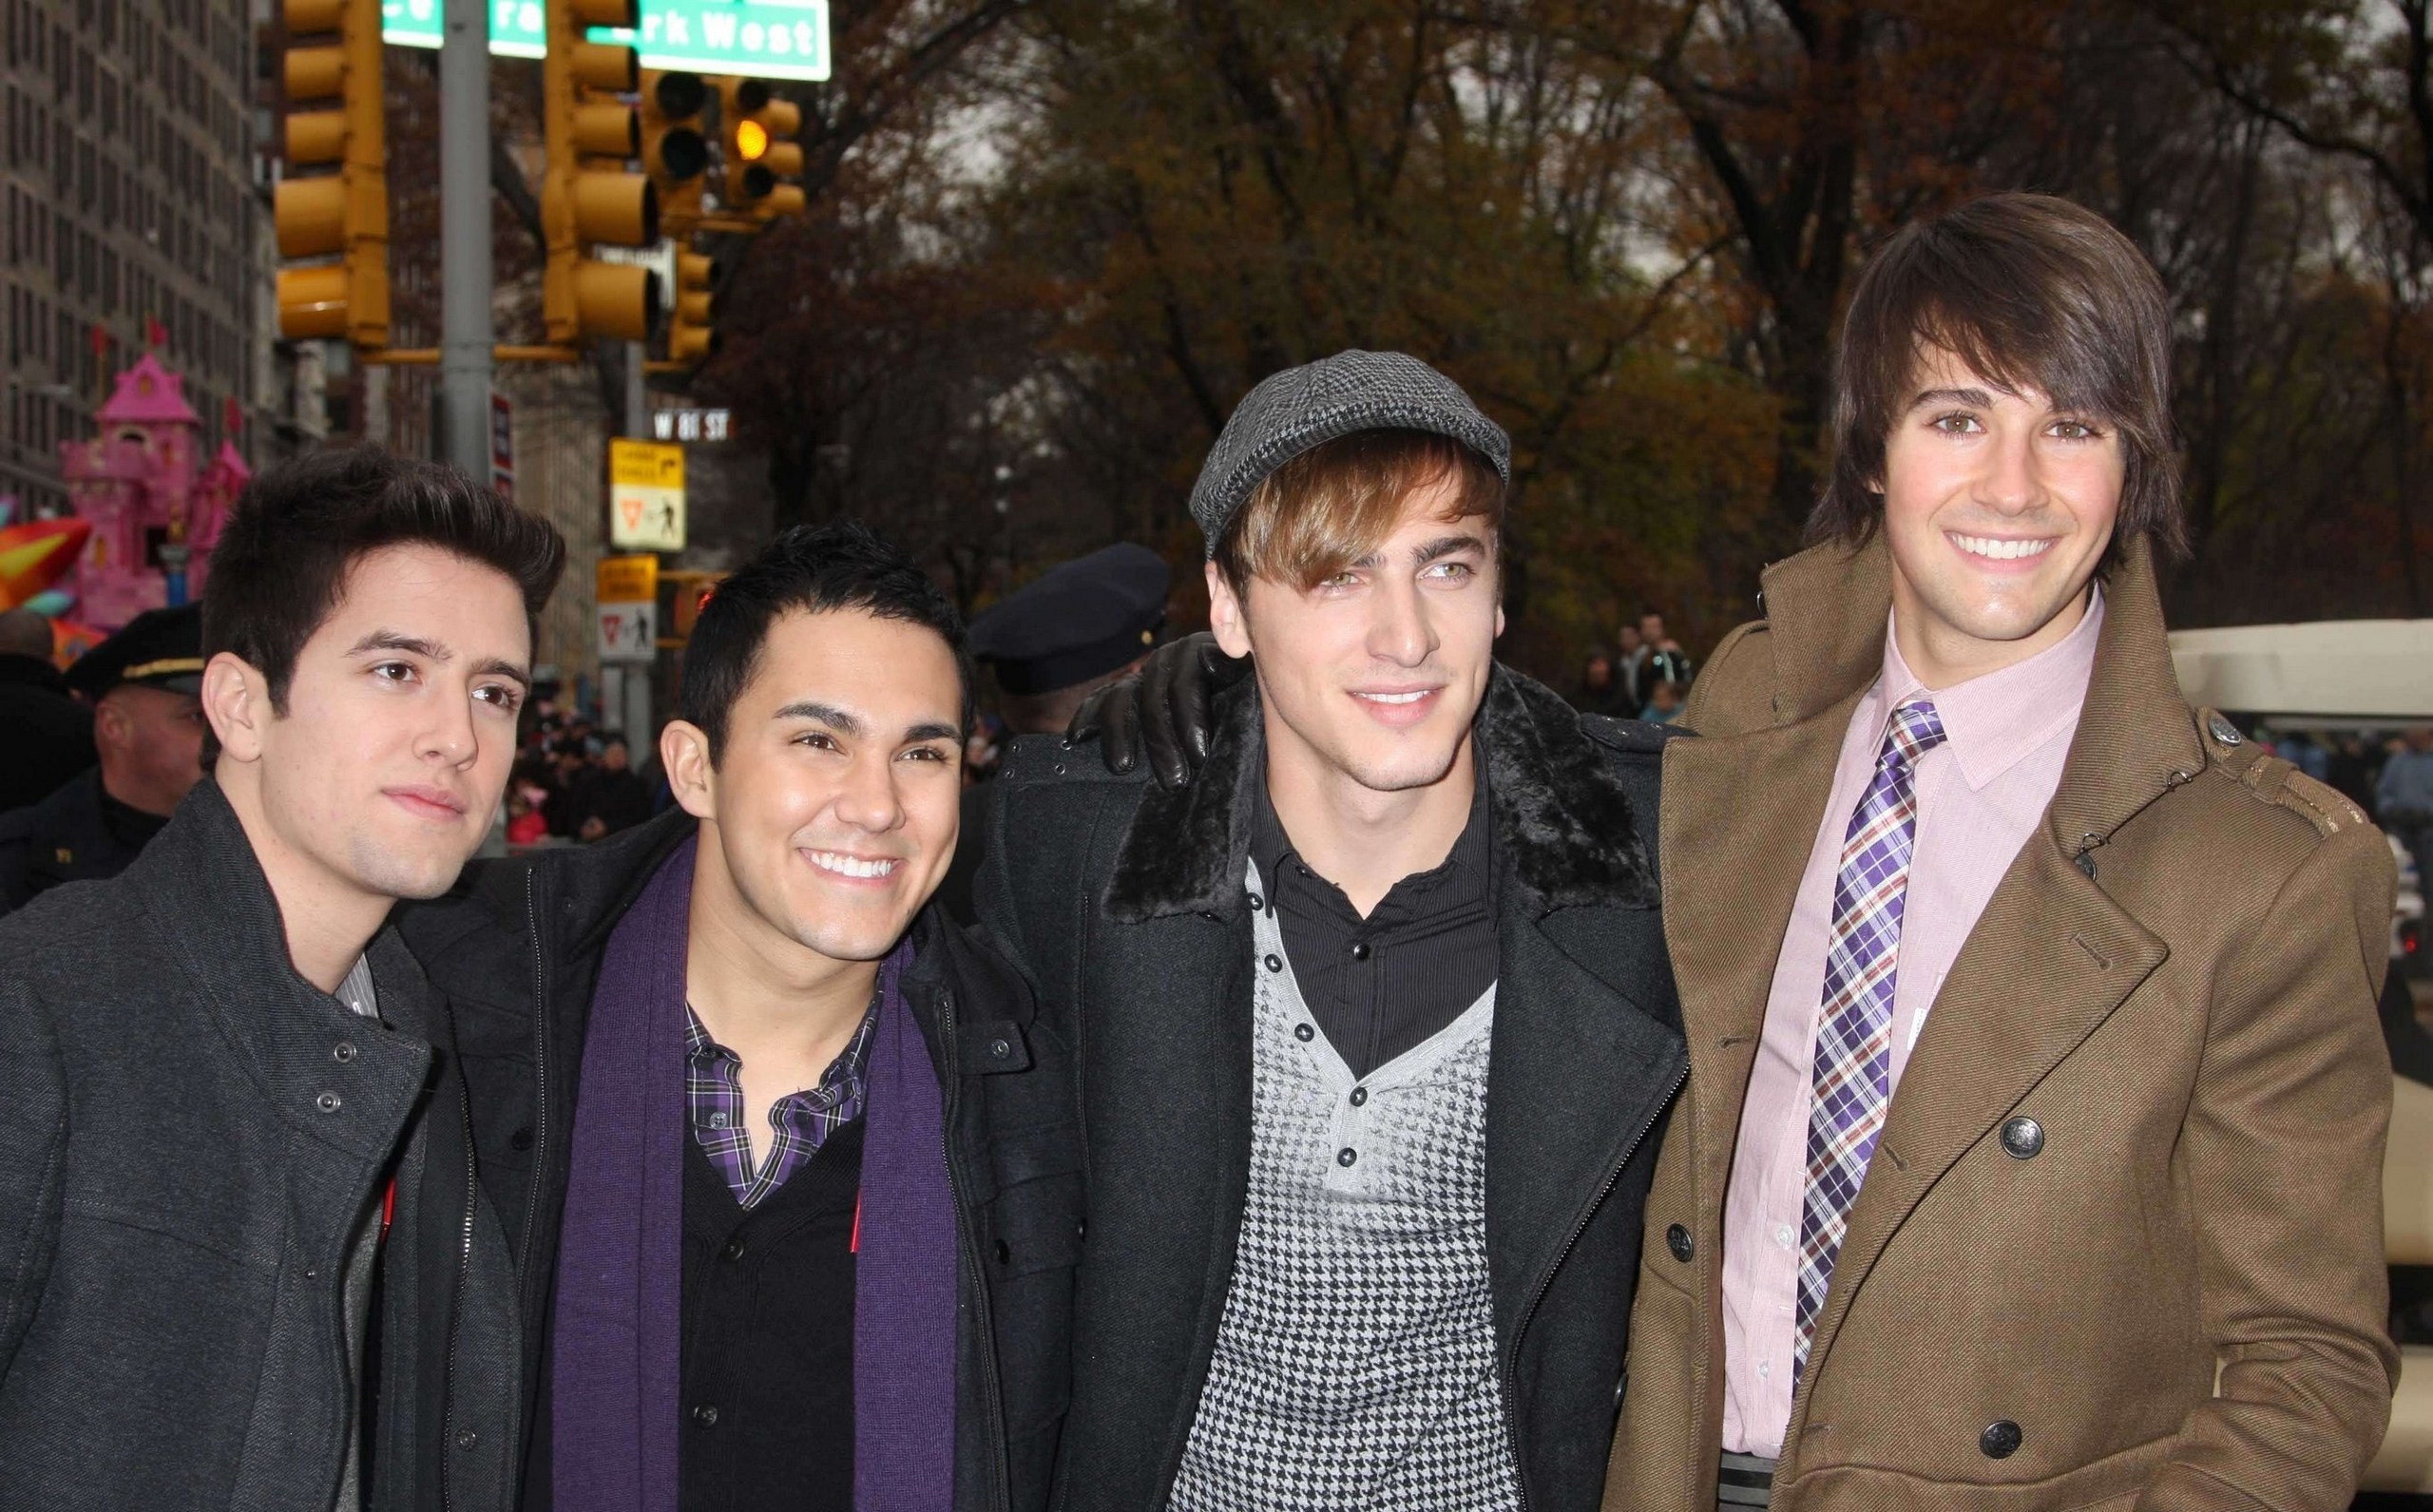 84th Annual Macy's Thanksgiving Day Parade (November, 25th 2010)